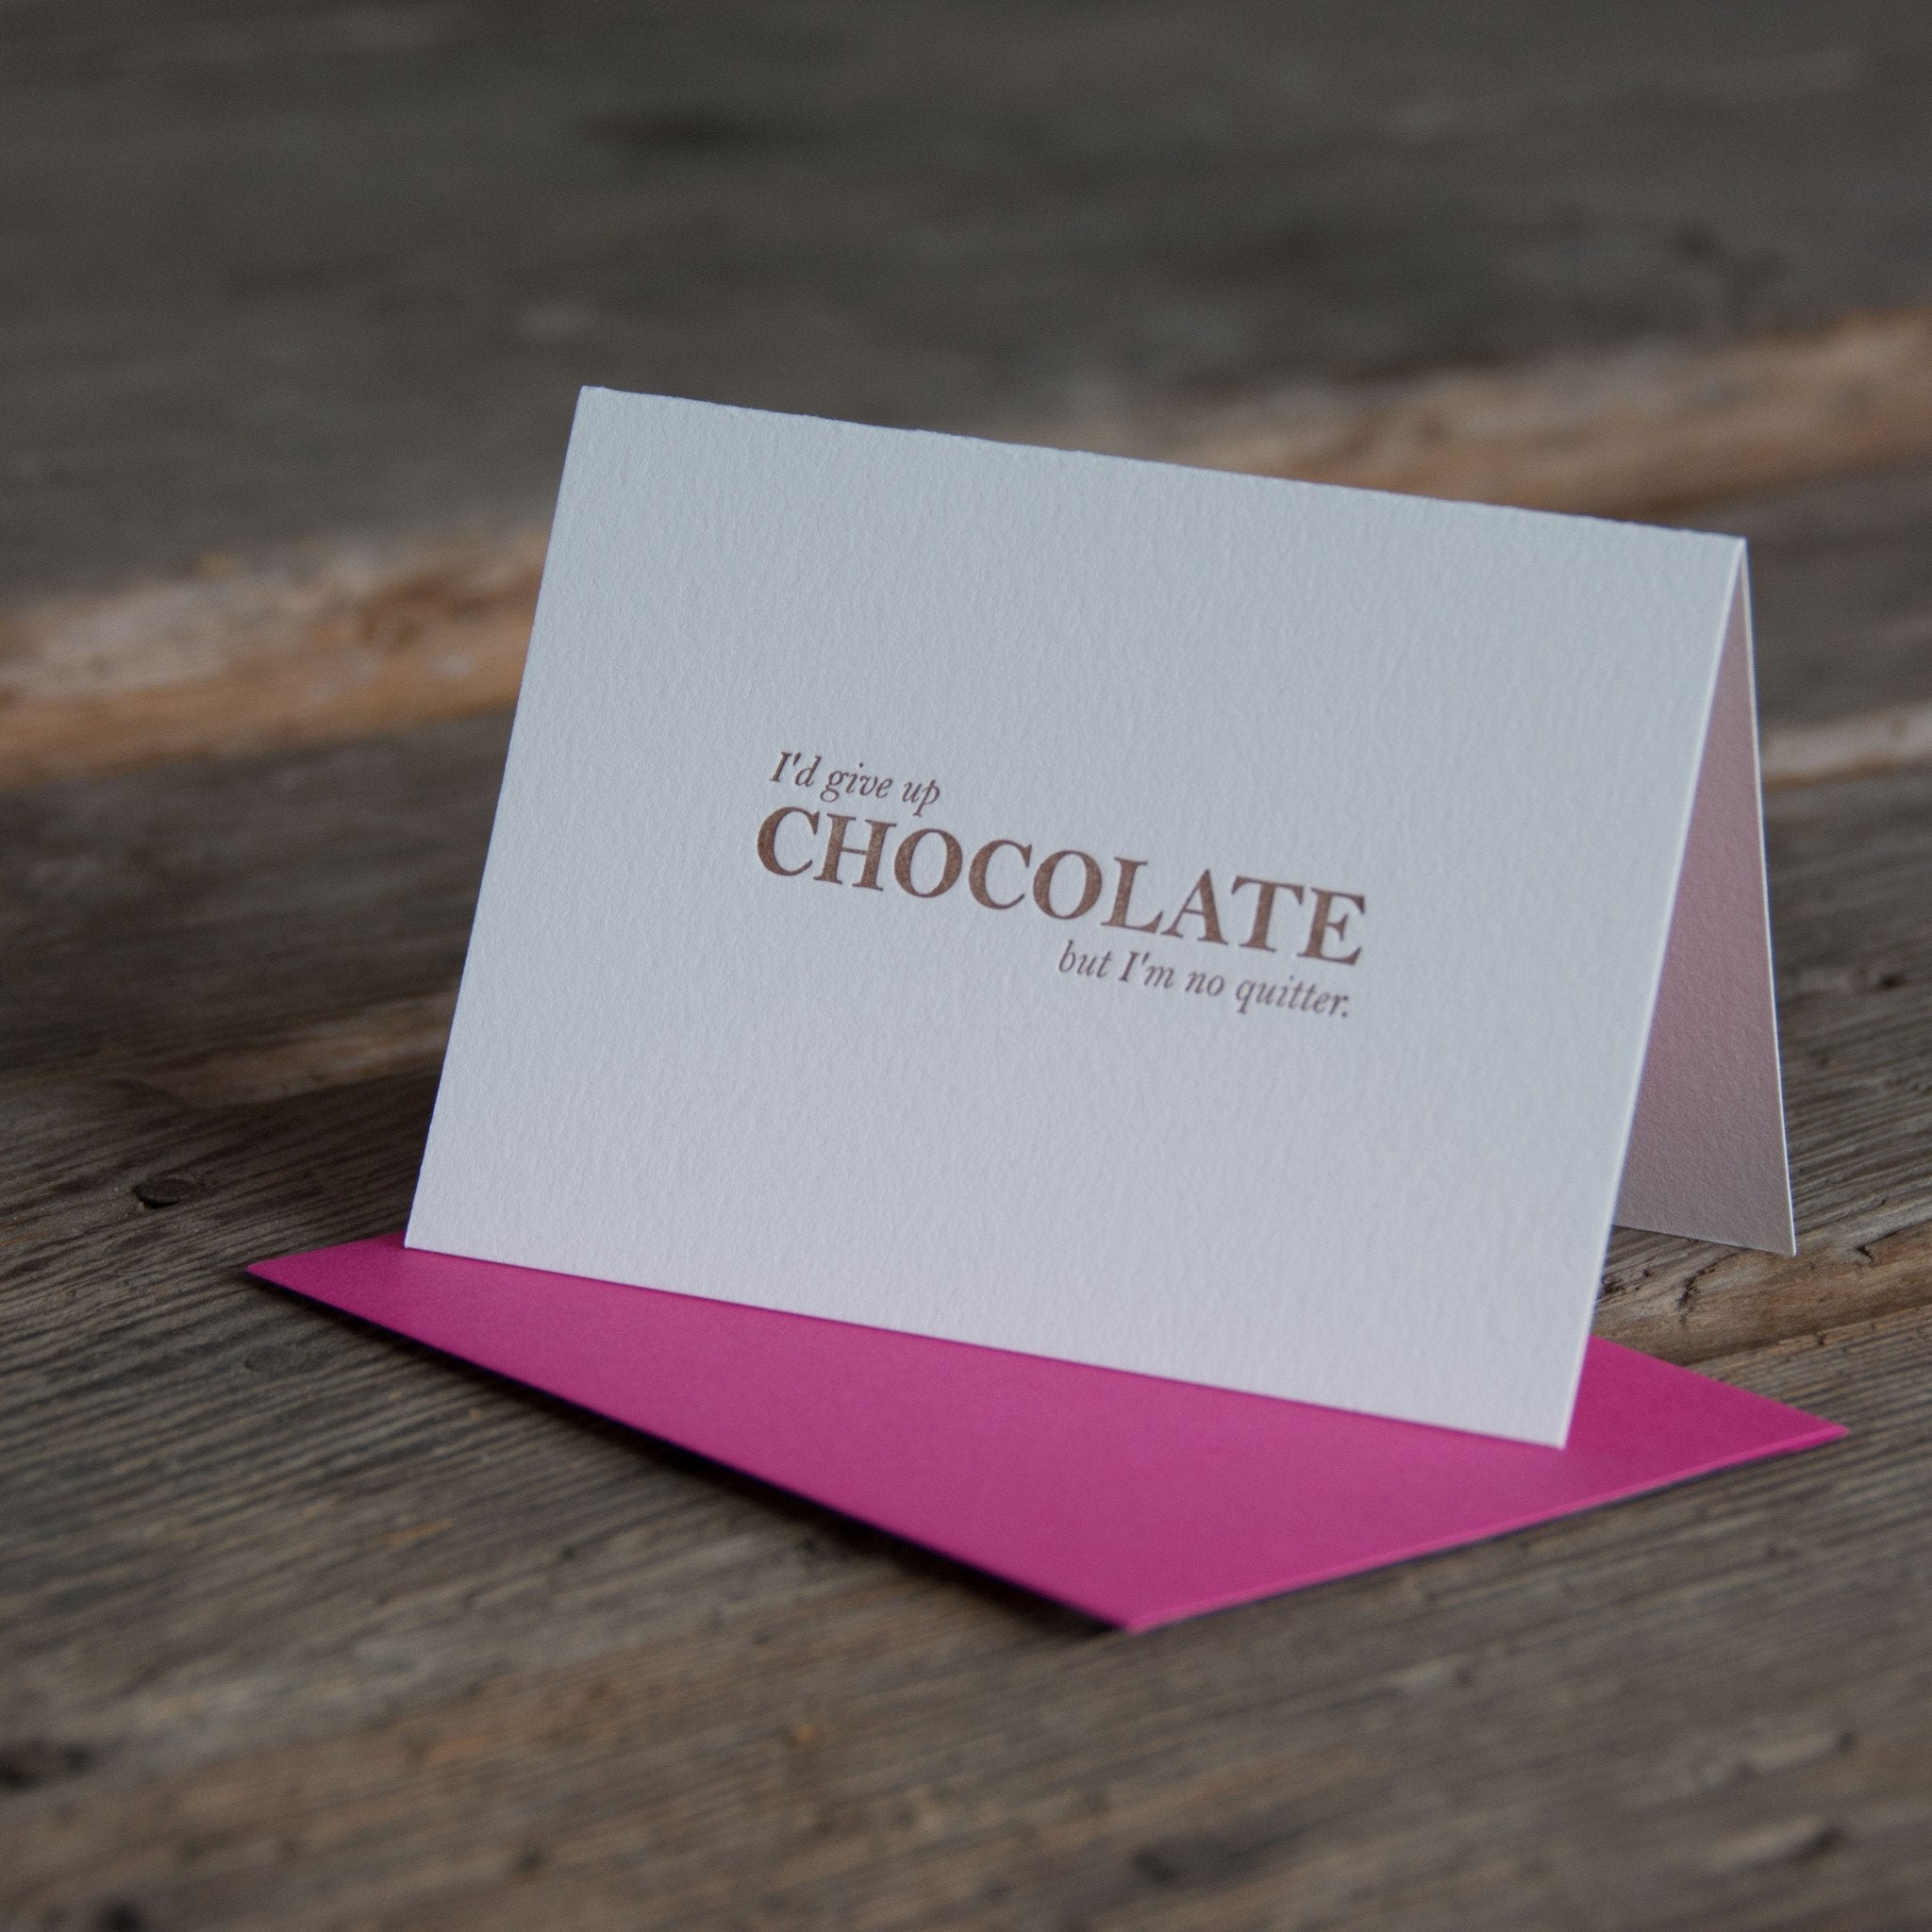 I'd give up Chocolate but I'm no quitter, letterpress printed eco friendly